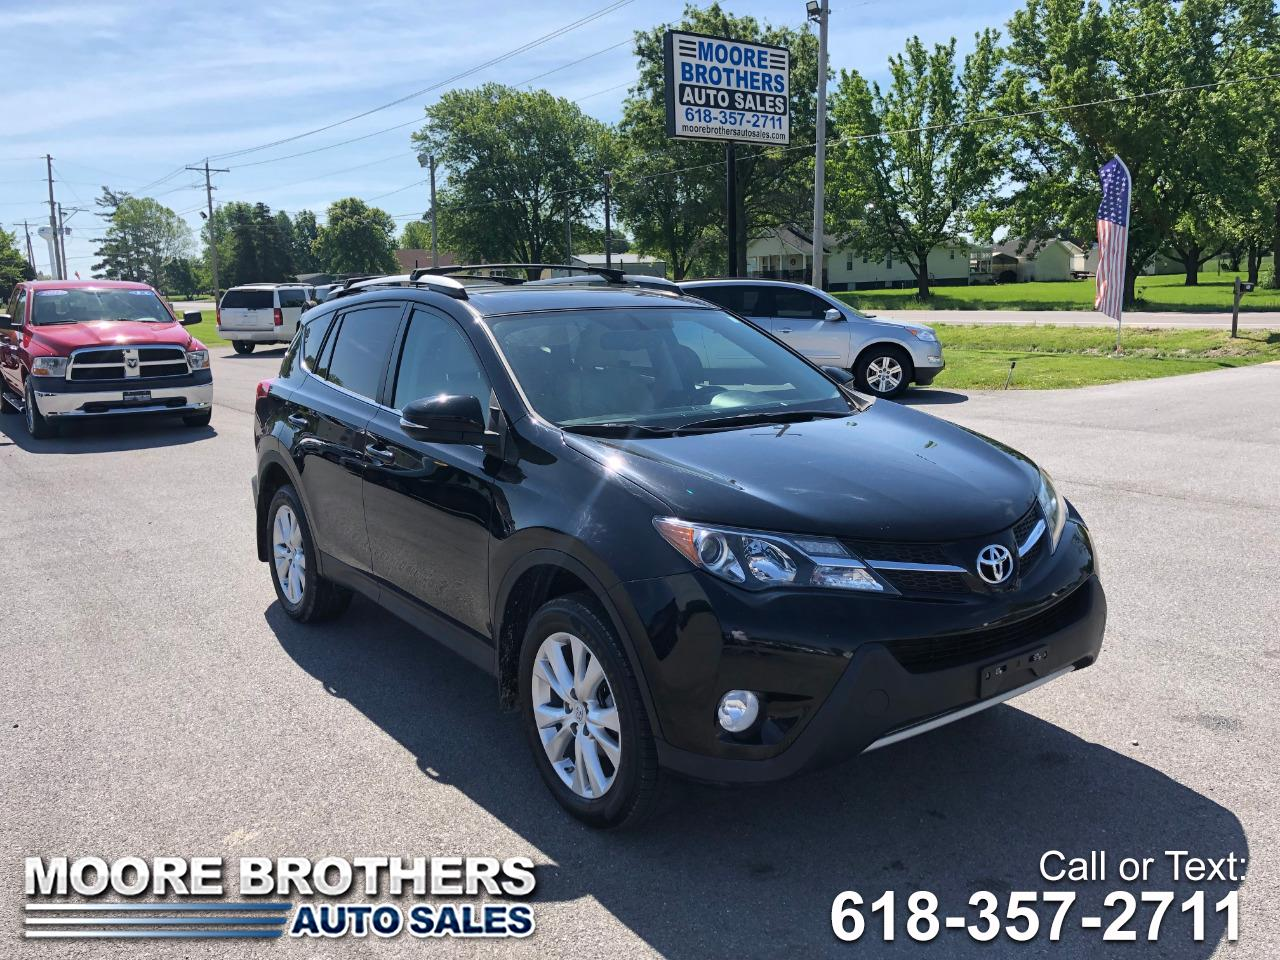 2014 Toyota RAV4 AWD 4dr Limited (Natl)